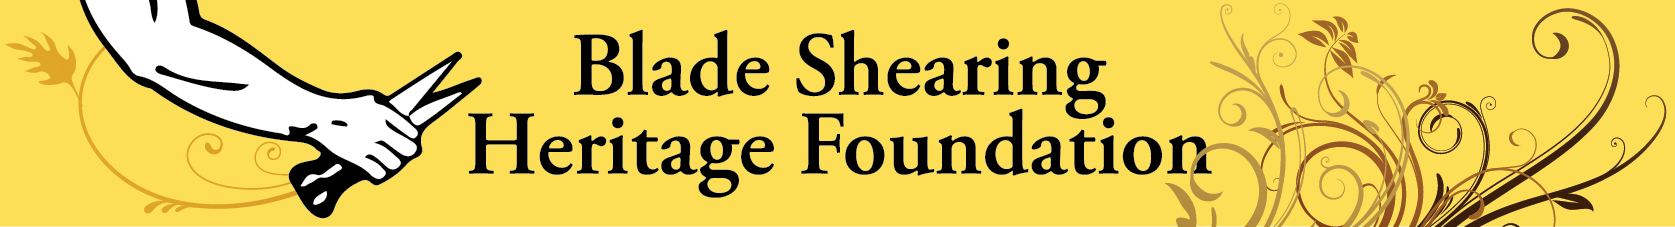 Blade Shearing Heritage Foundation Inc.